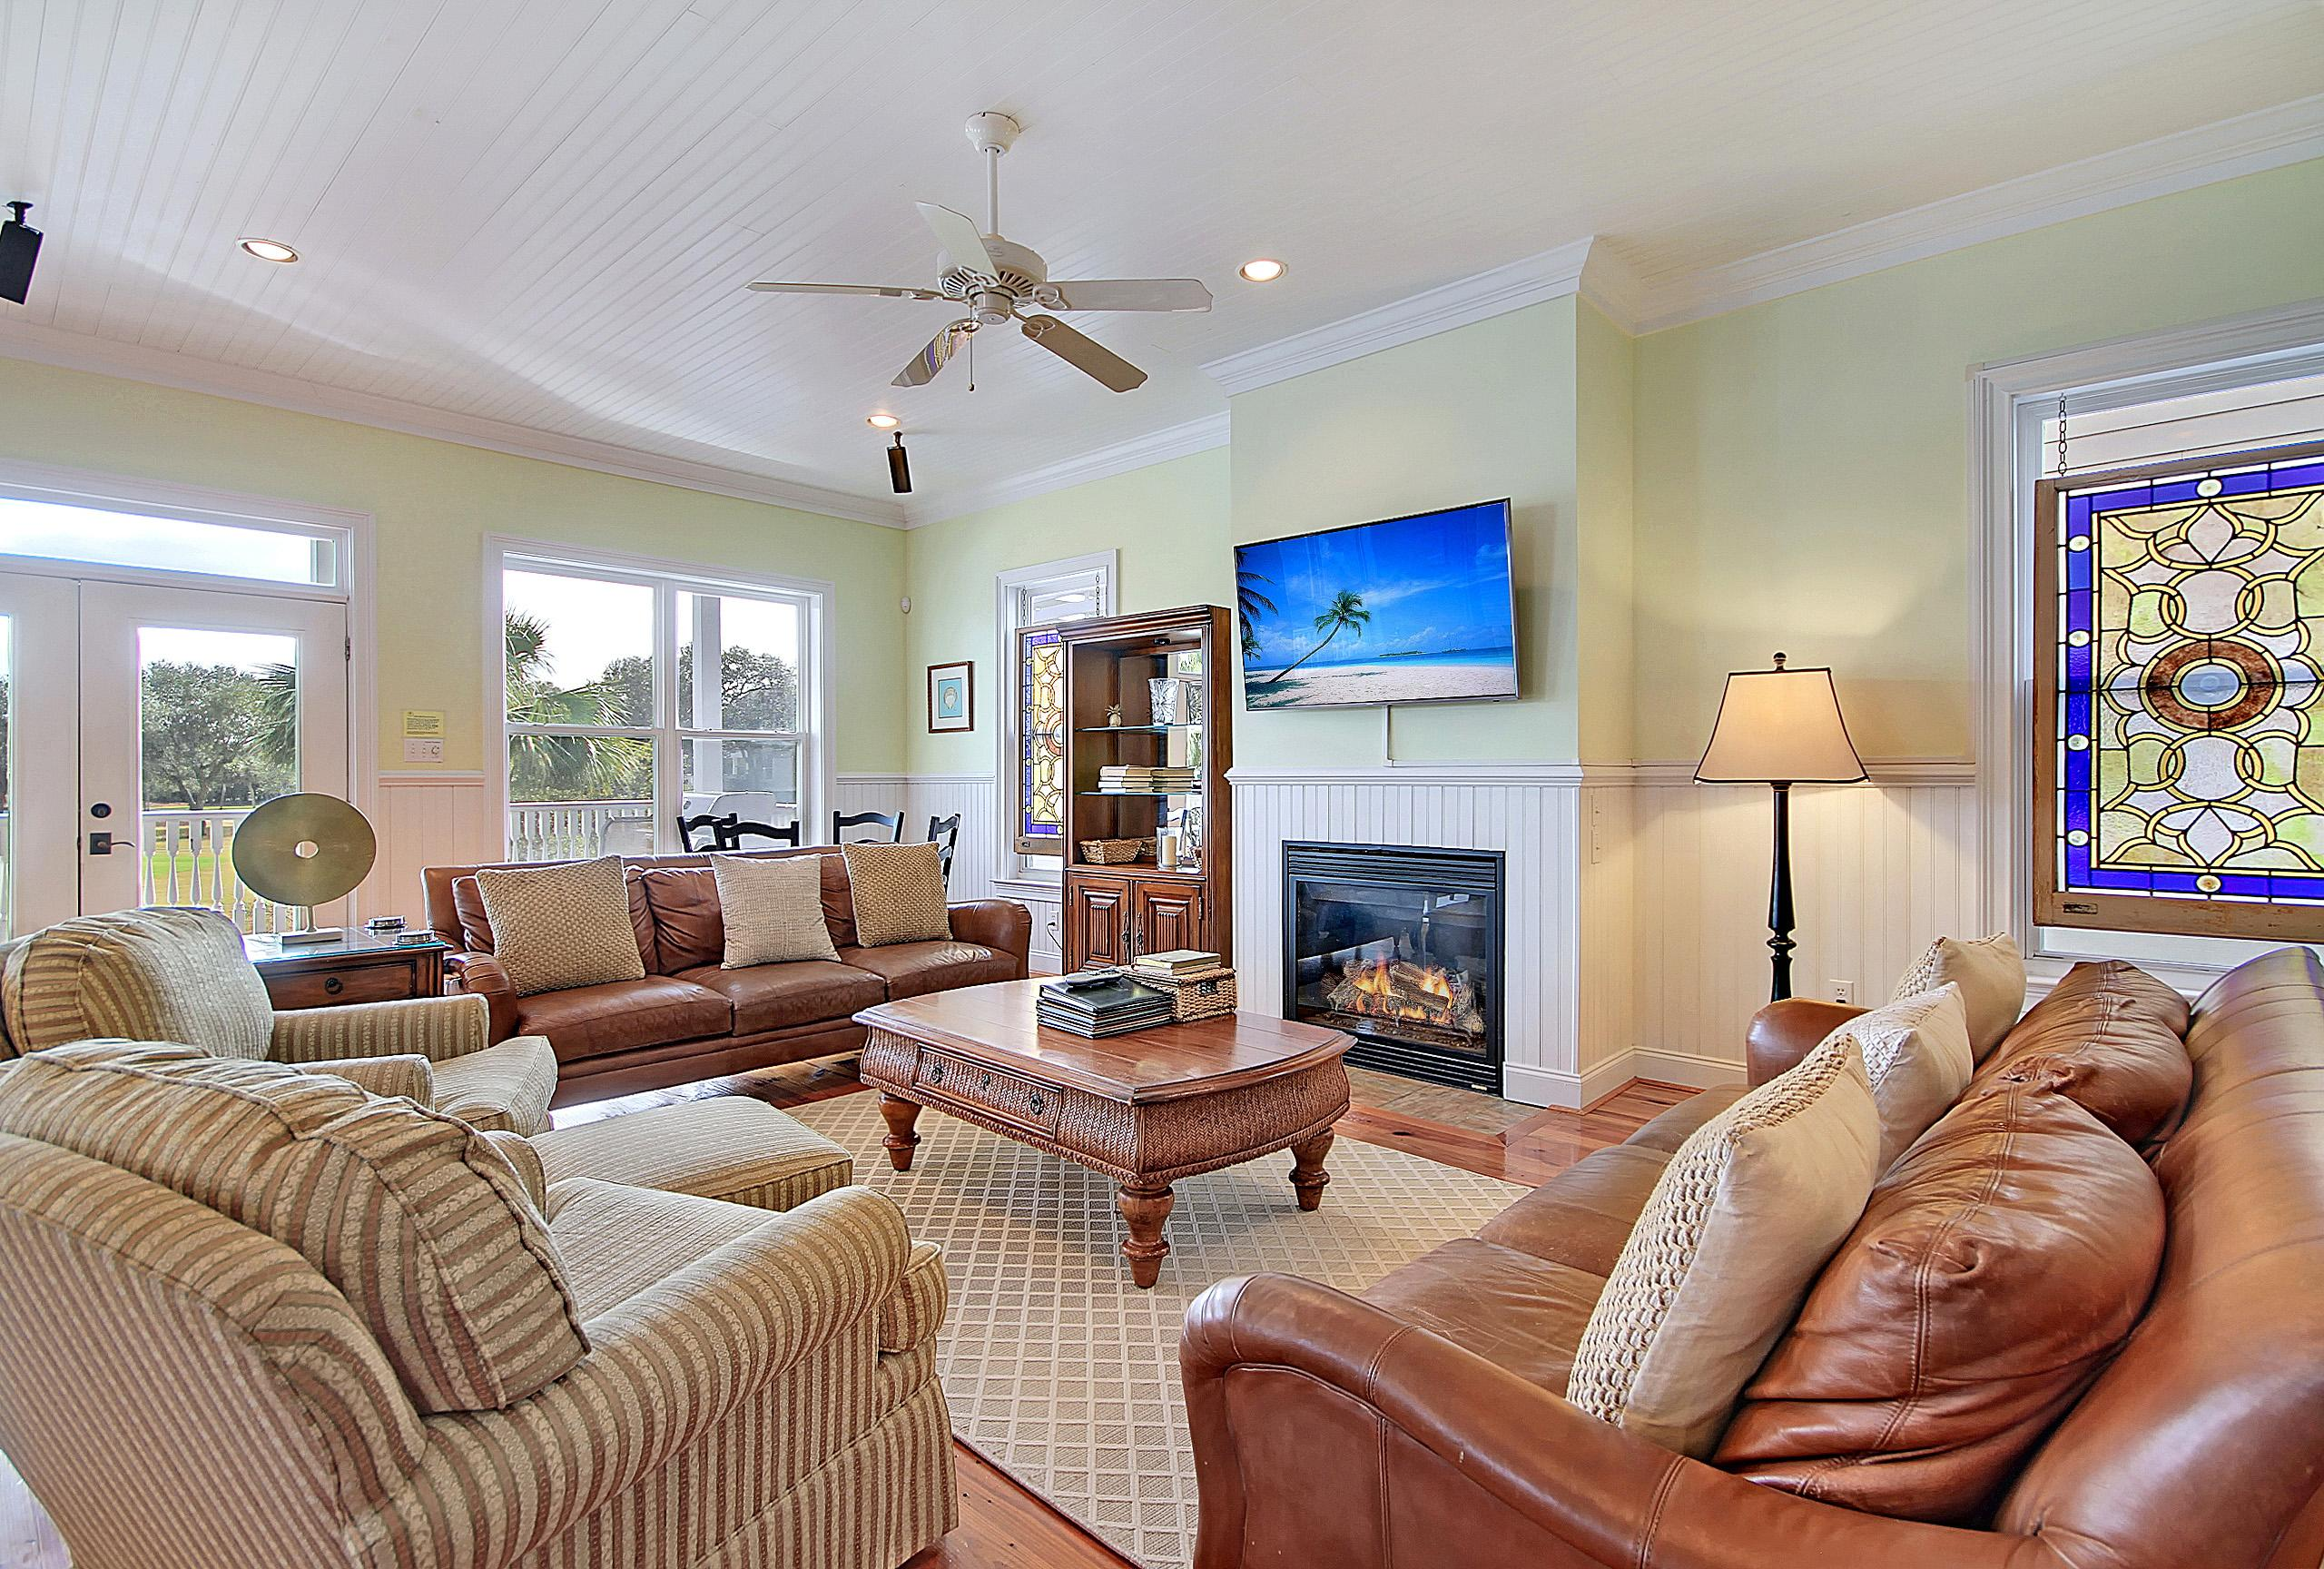 The living area features a gas fireplace, pine floors, and stained-glass windows.